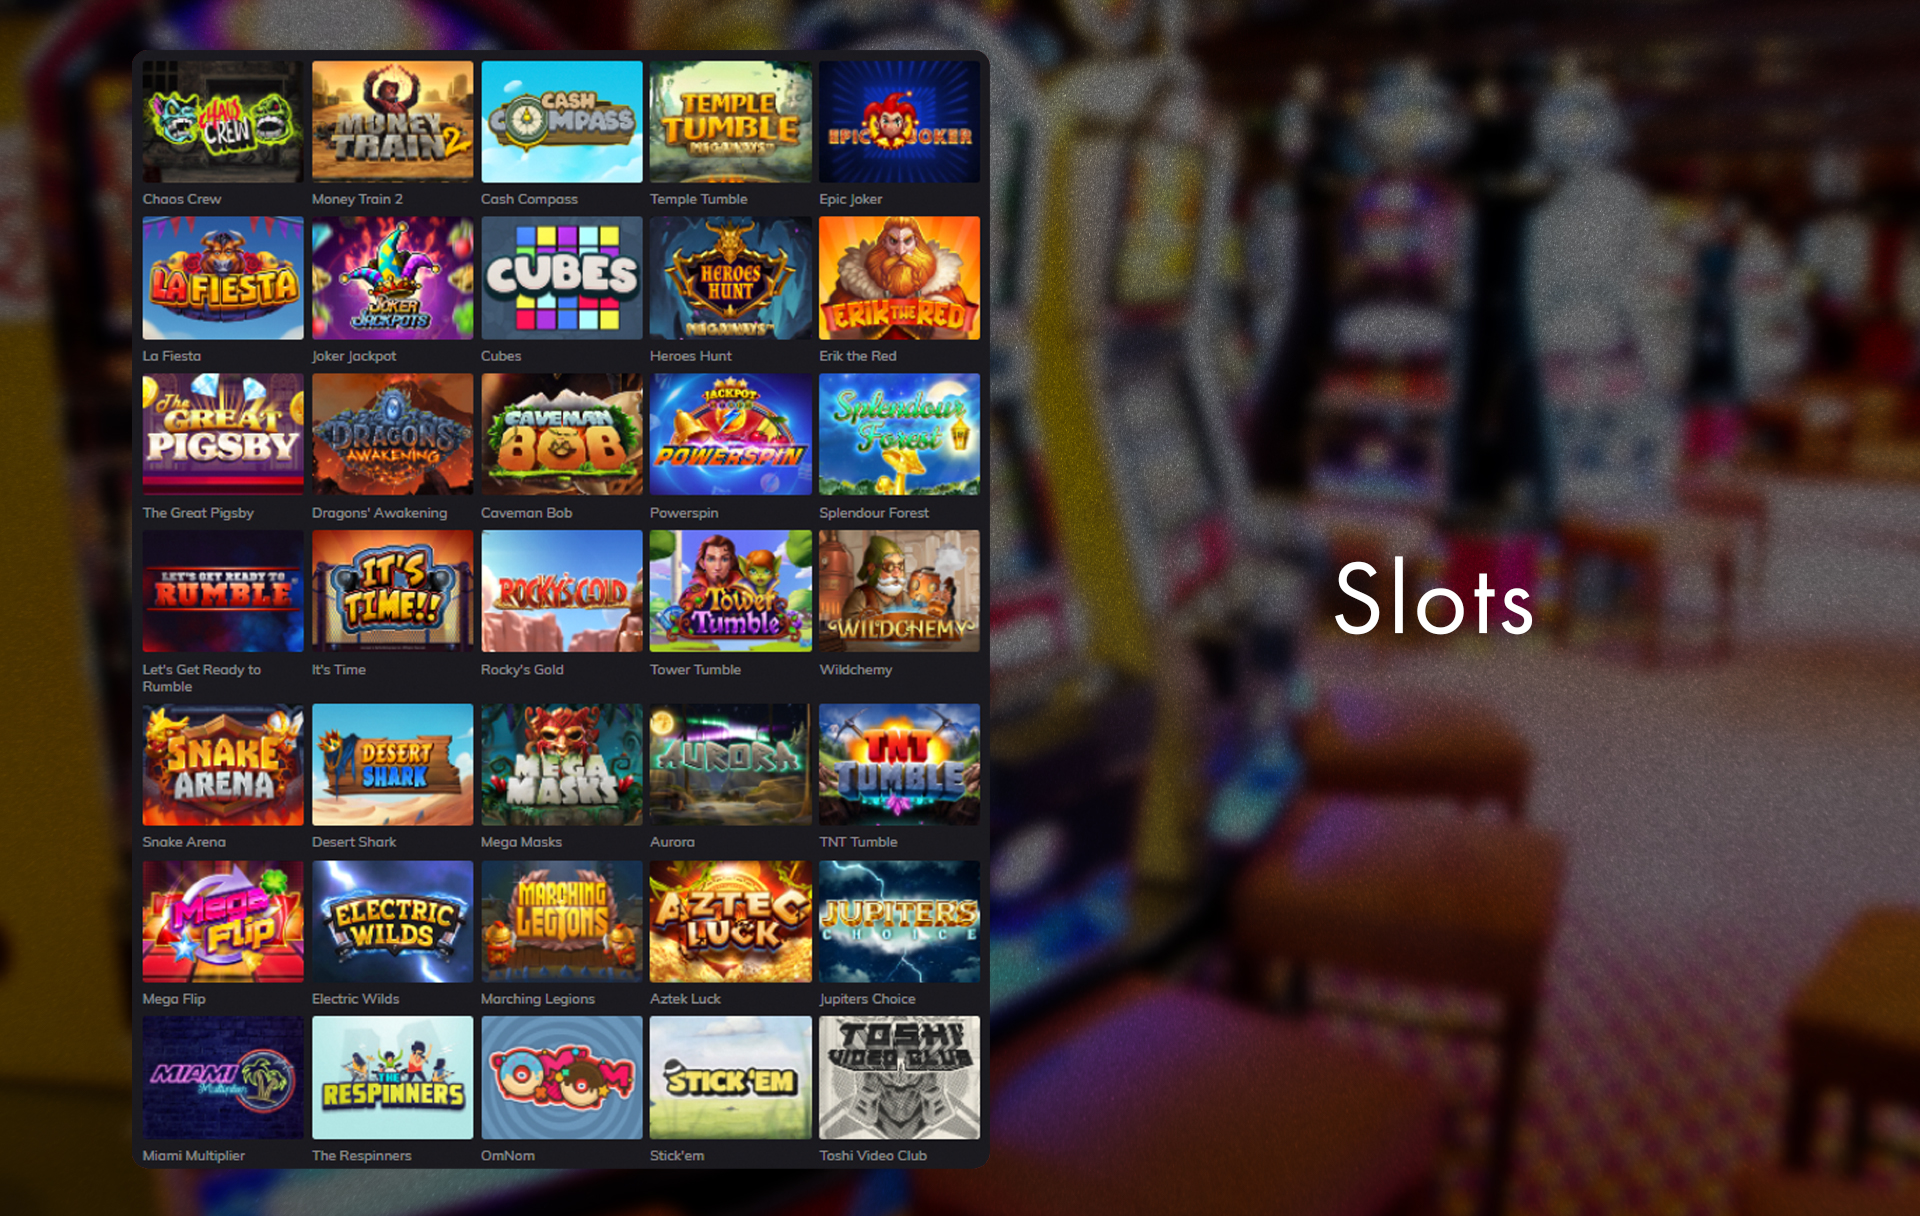 In the section of Casino, you can find slots and other games.